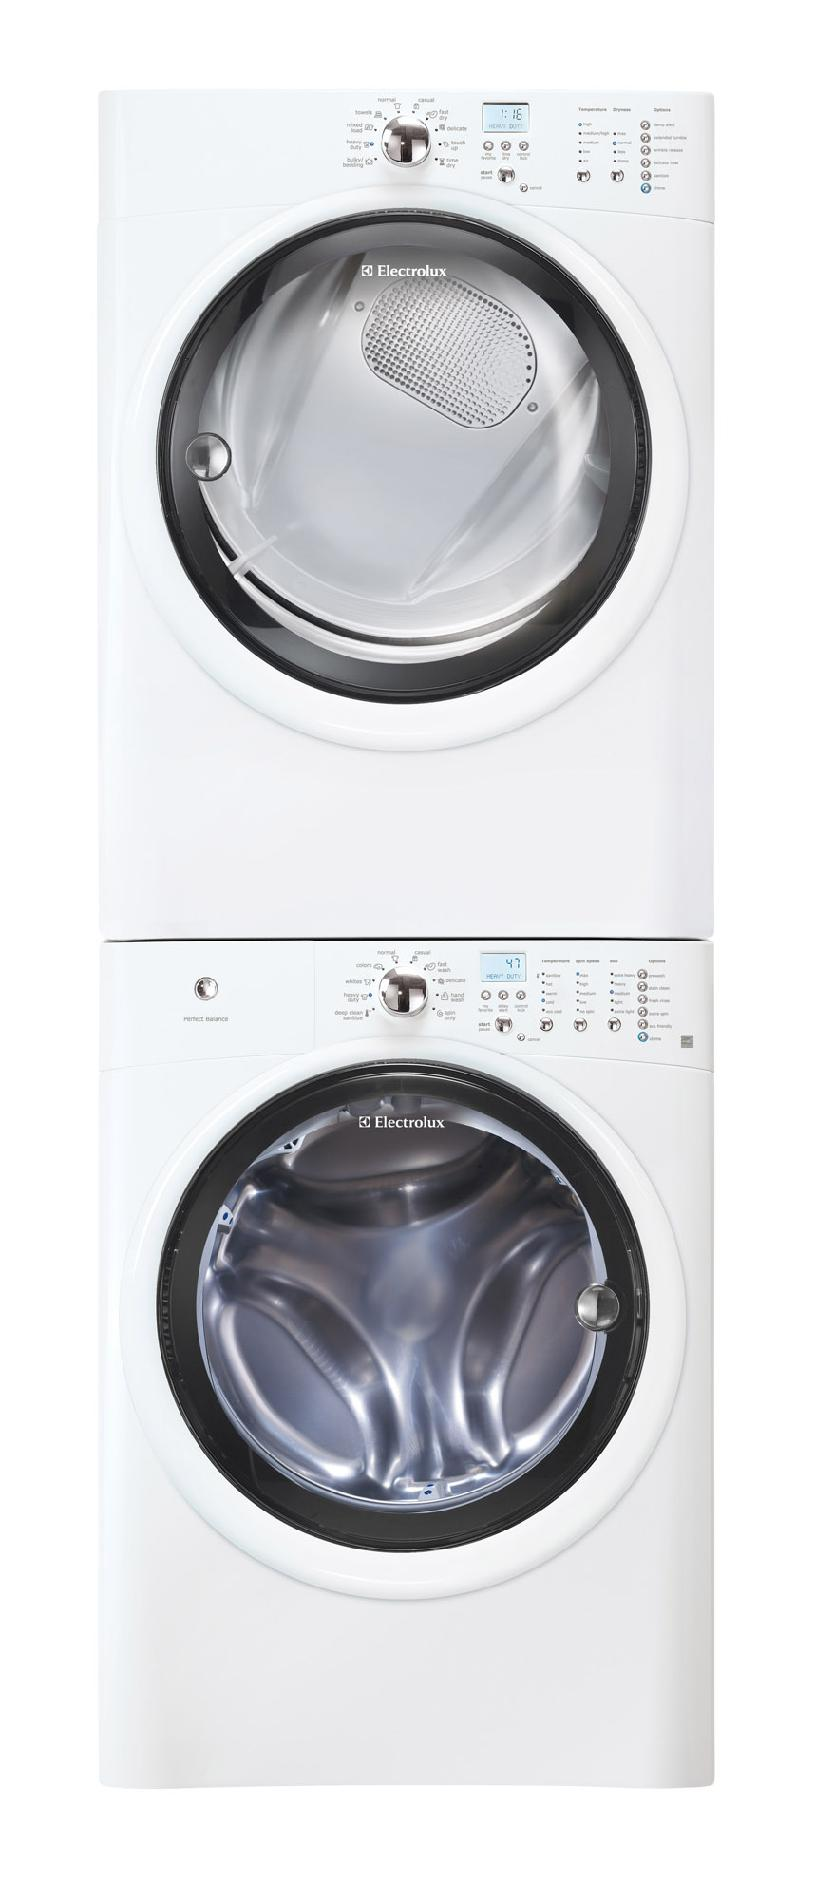 Electrolux 8.0 cu. ft. Electric Dryer w/ IQ-Touch™ Controls - Island White